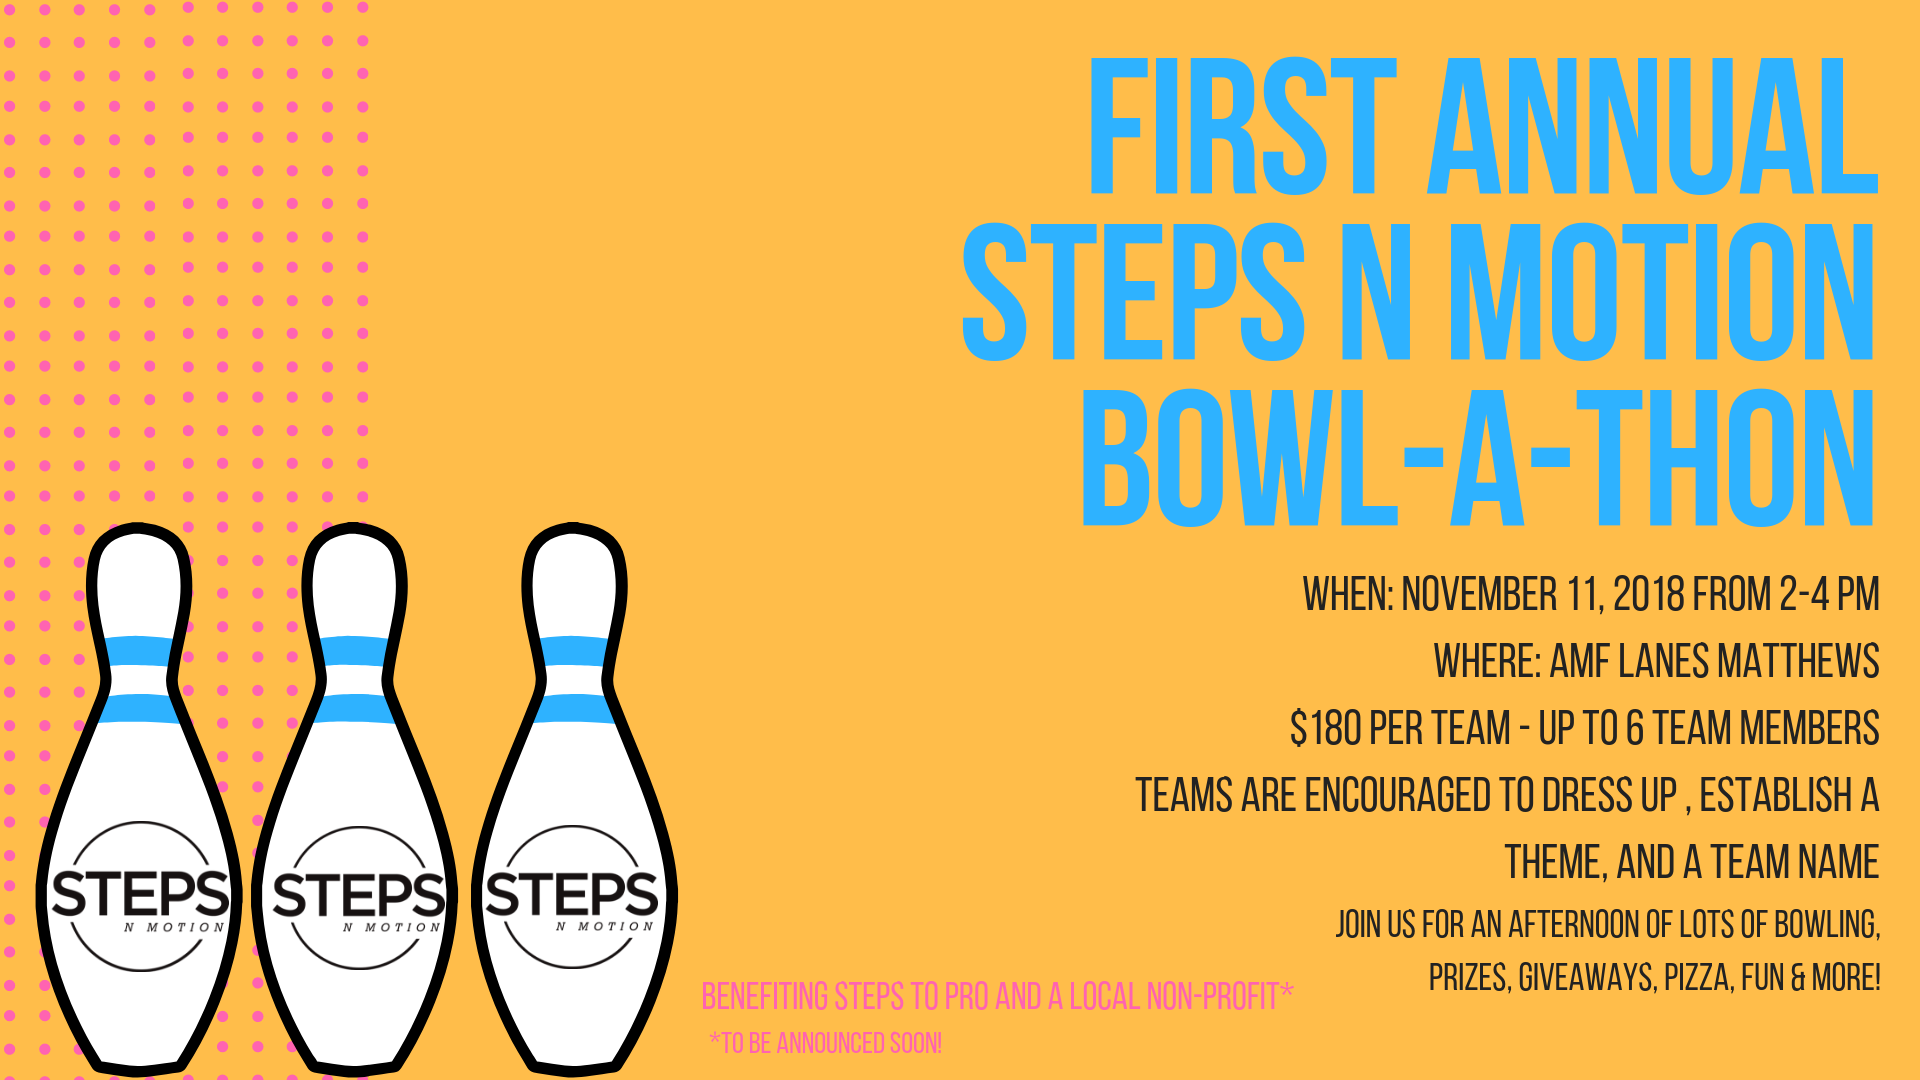 Bowl-a-thon Facebook Event-3.png